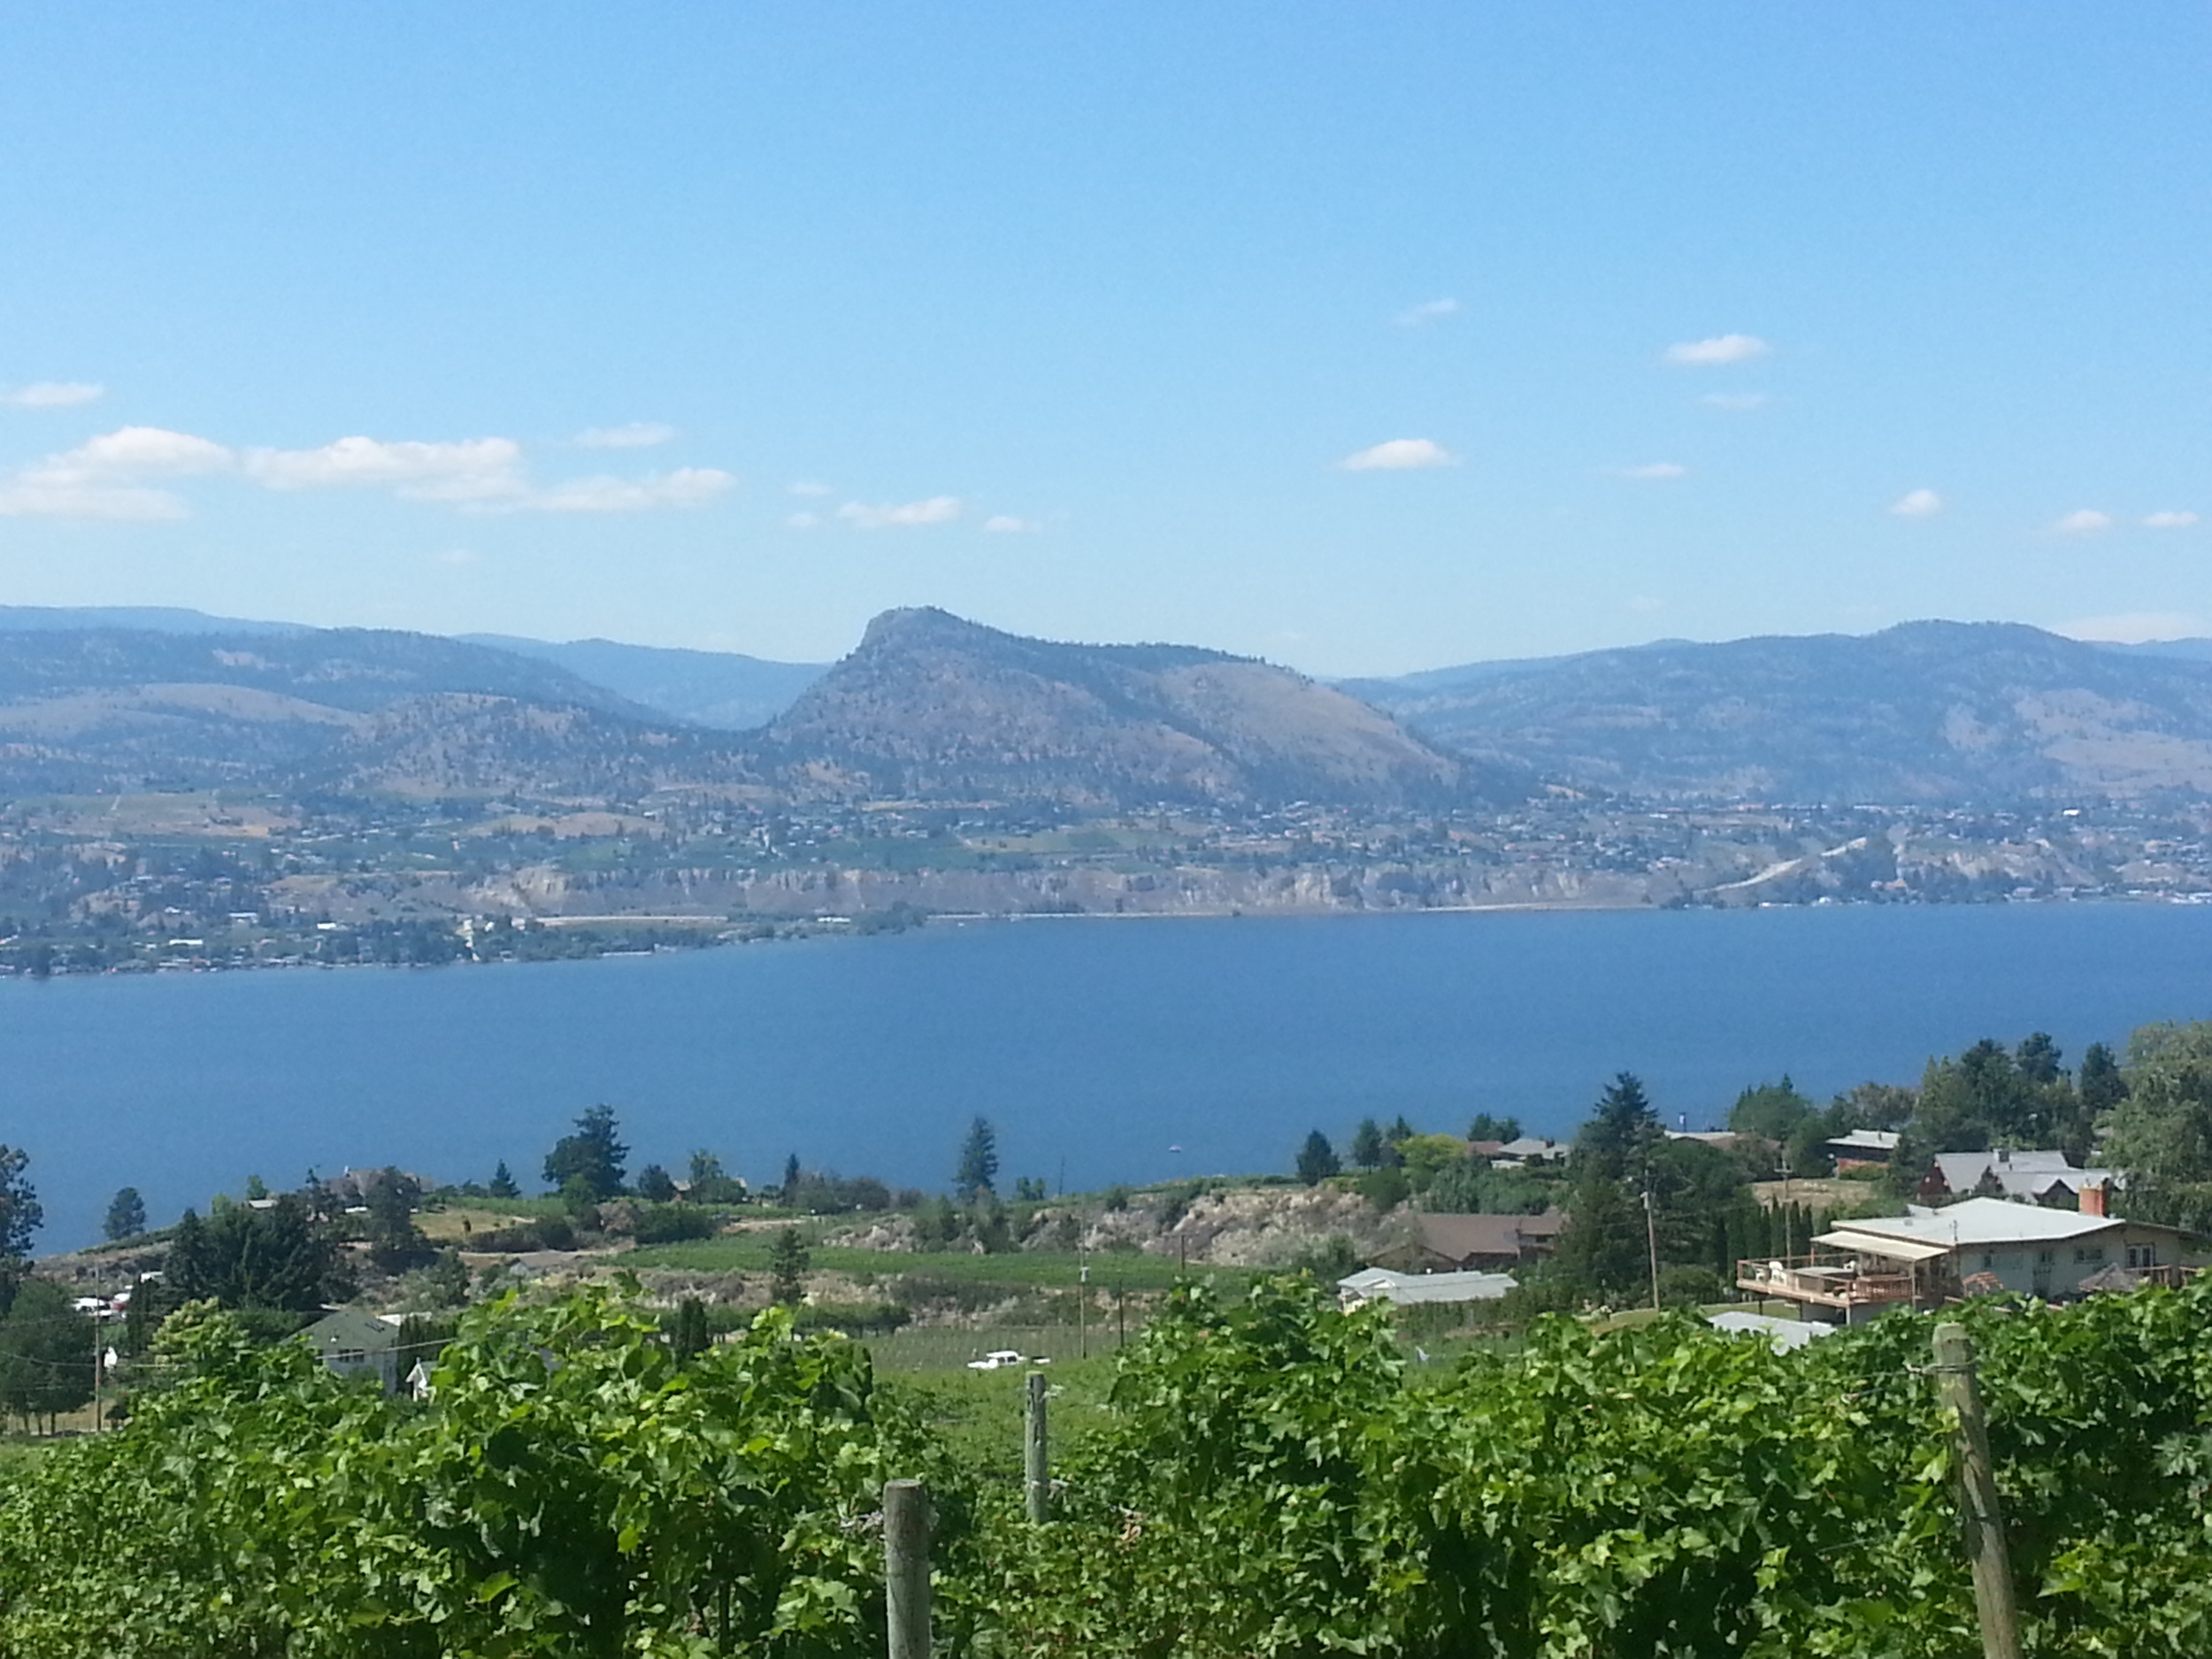 Overlooking Okanagan Lake from the Naramata Bench. Photo by All She Wrote.